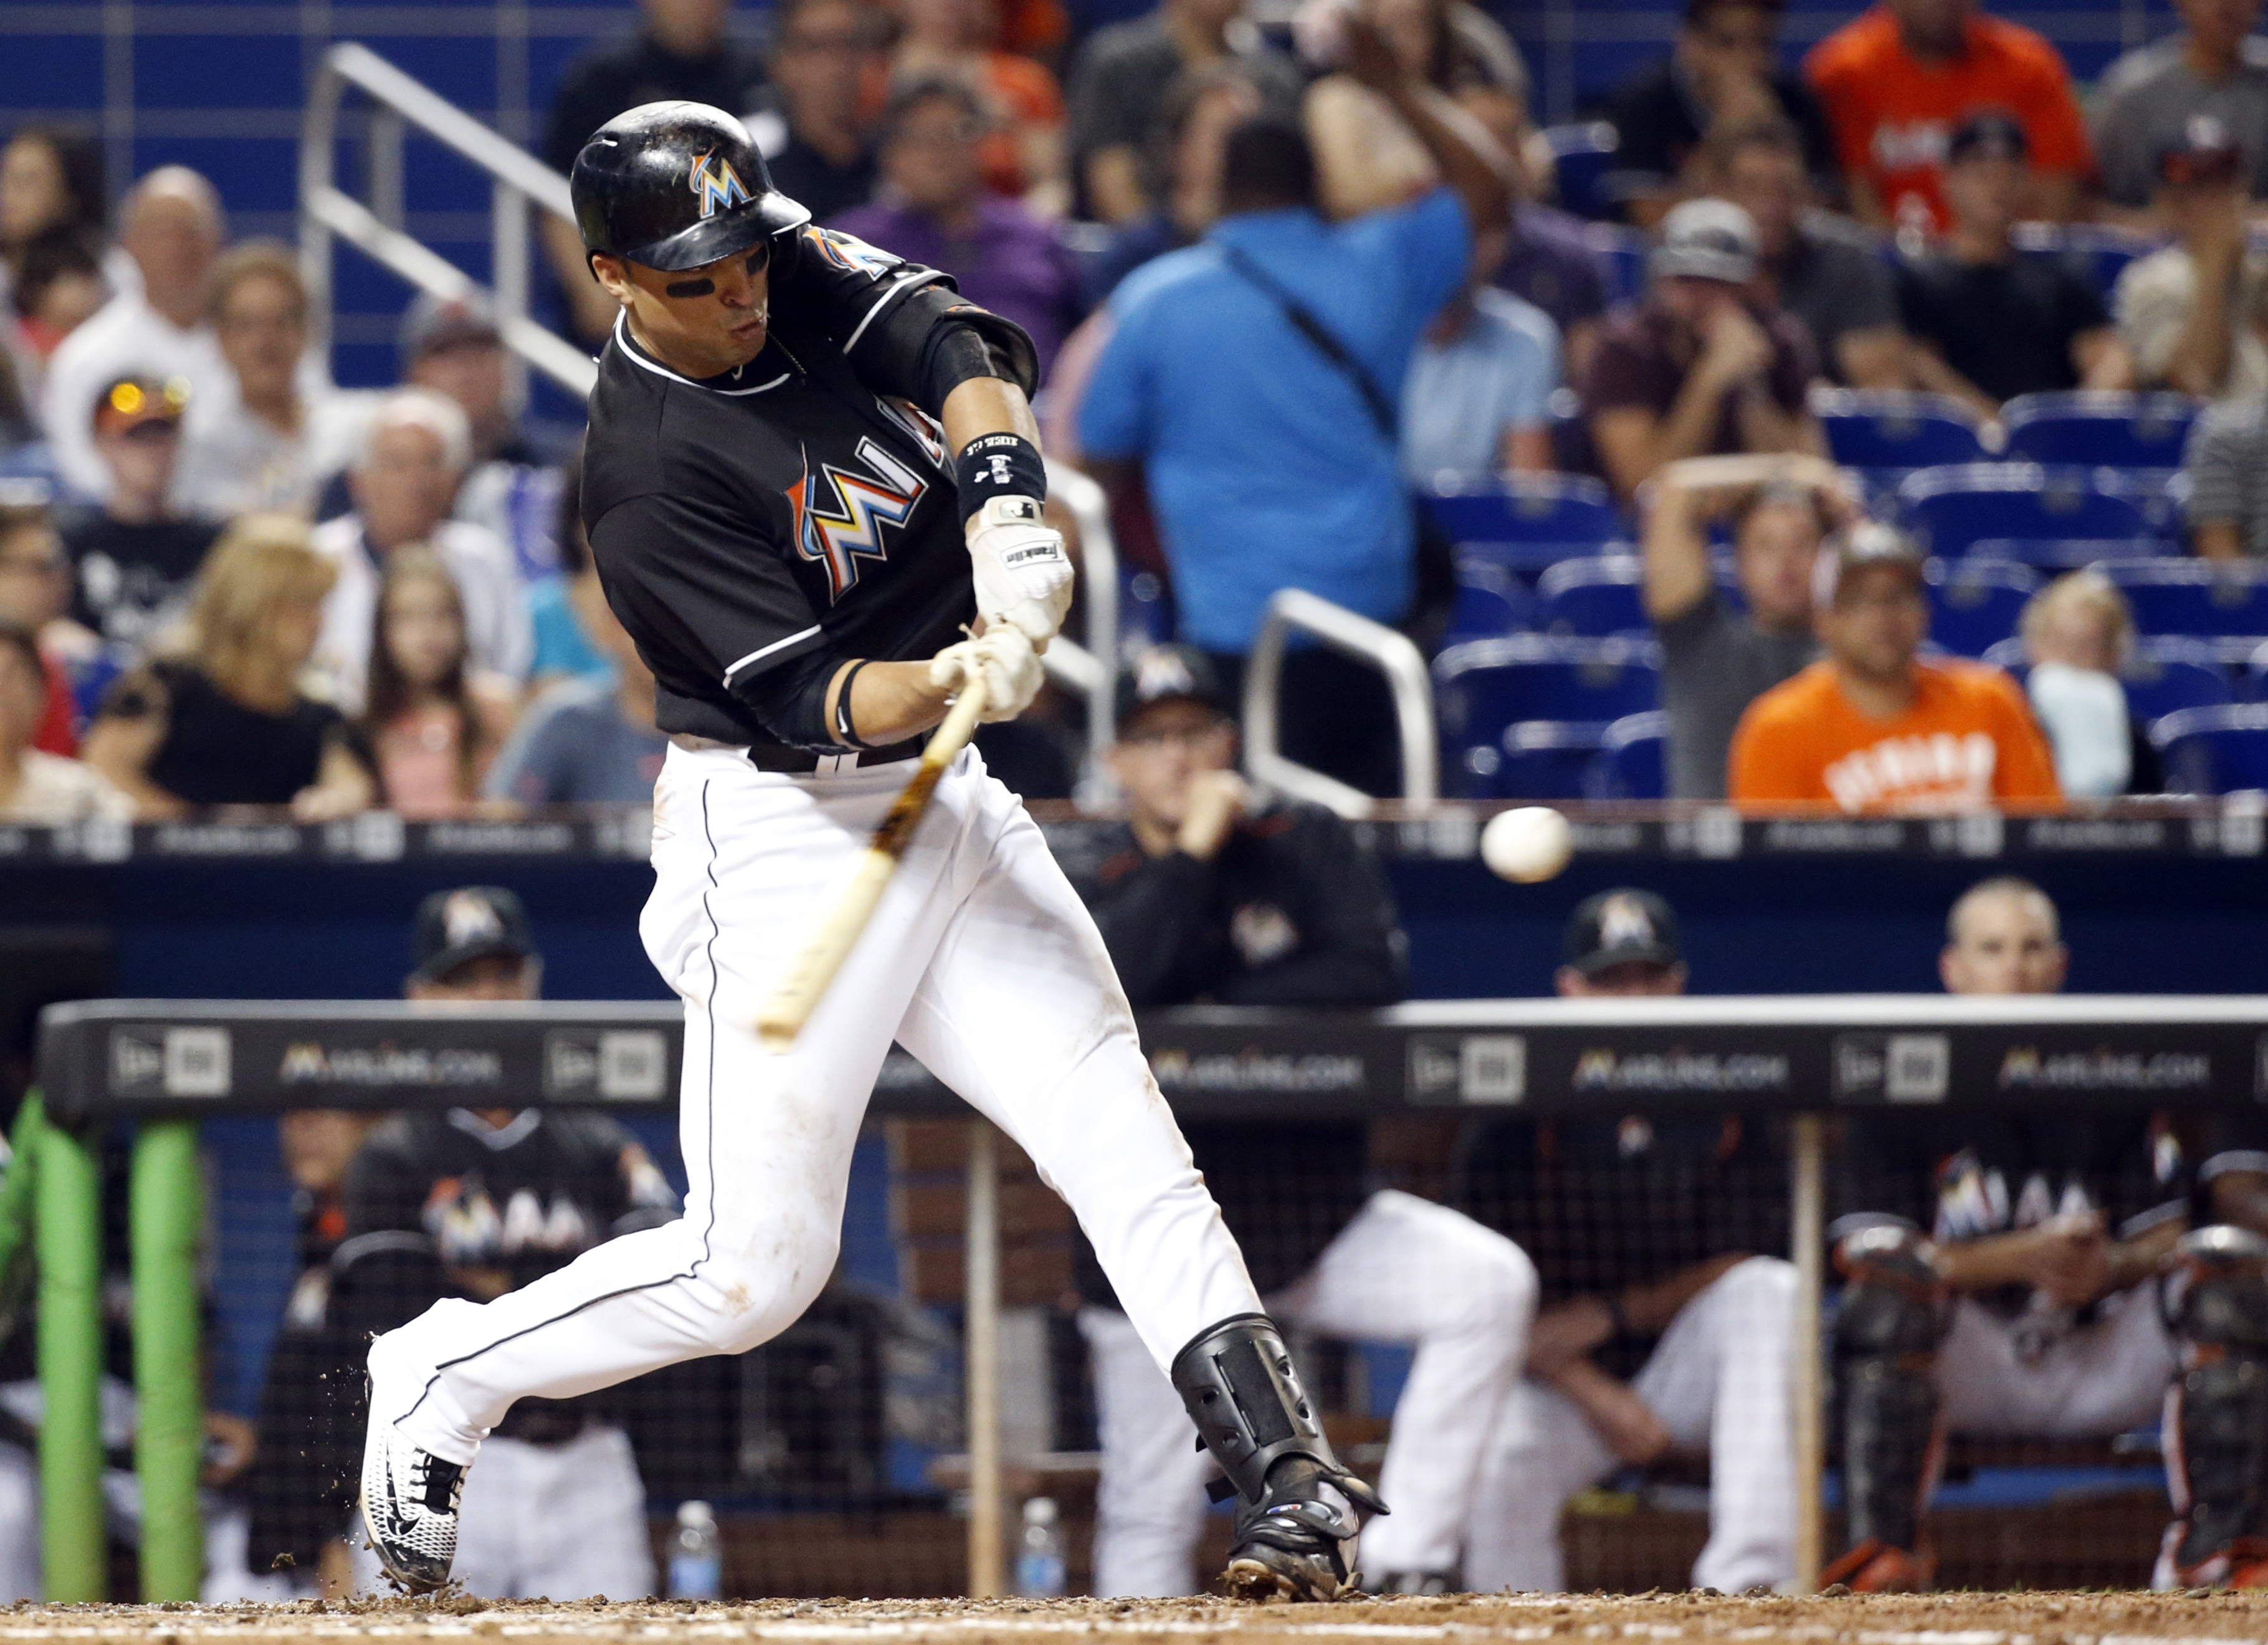 Miami Marlins' Martin Prado hits a home run, scoring Adam Conley and Dee Gordon, during the third inning of a baseball game against the Chicago White Sox, Saturday, Aug. 13, 2016, in Miami. (AP Photo/Wilfredo Lee)